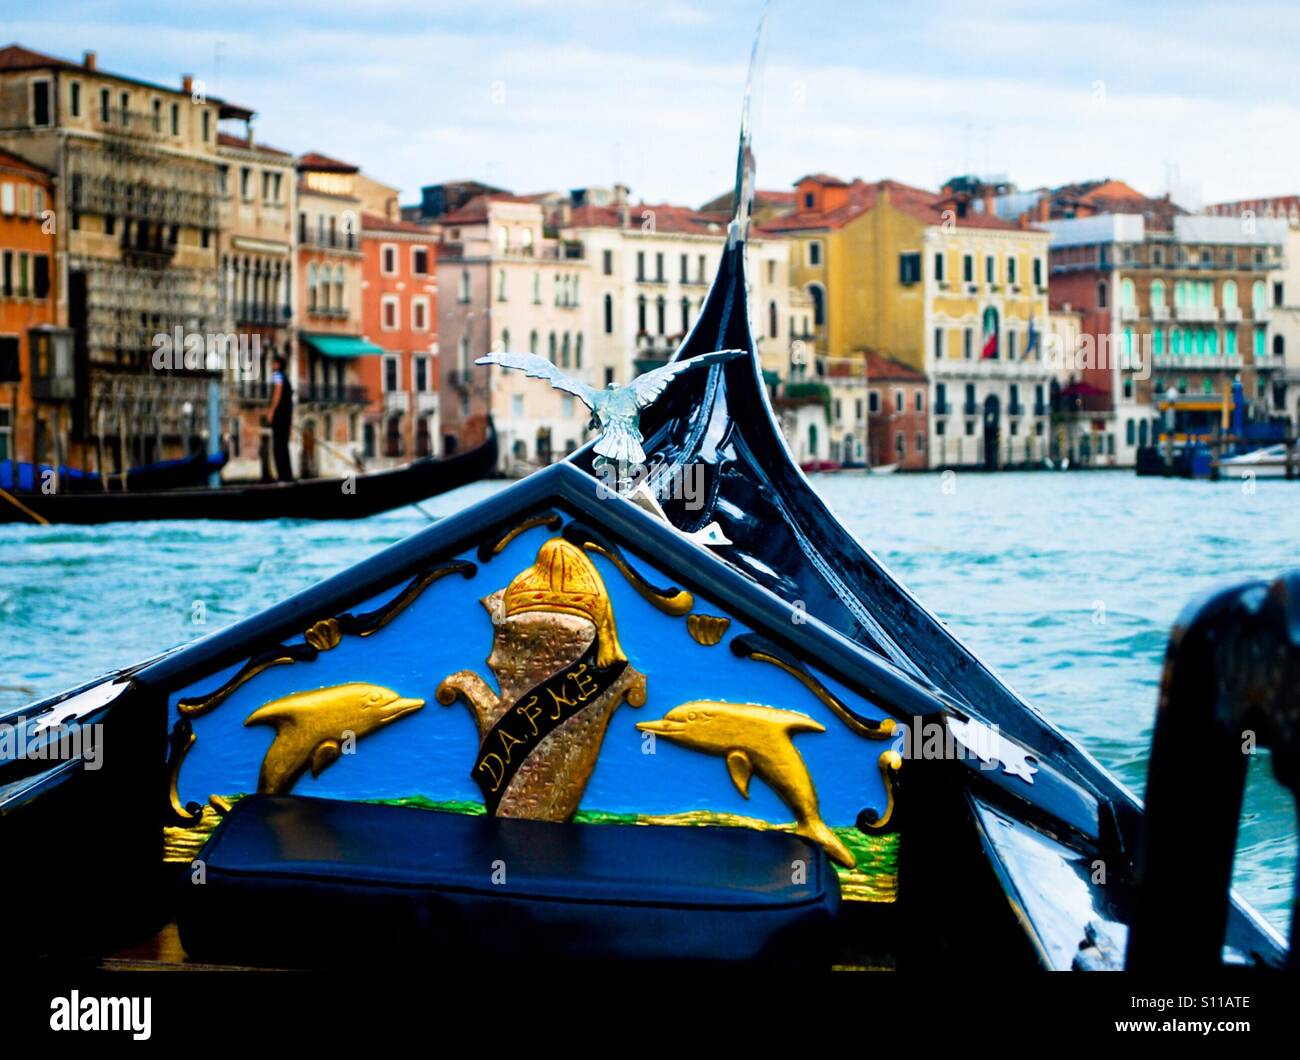 First person view of a gondola in Venice - Stock Image